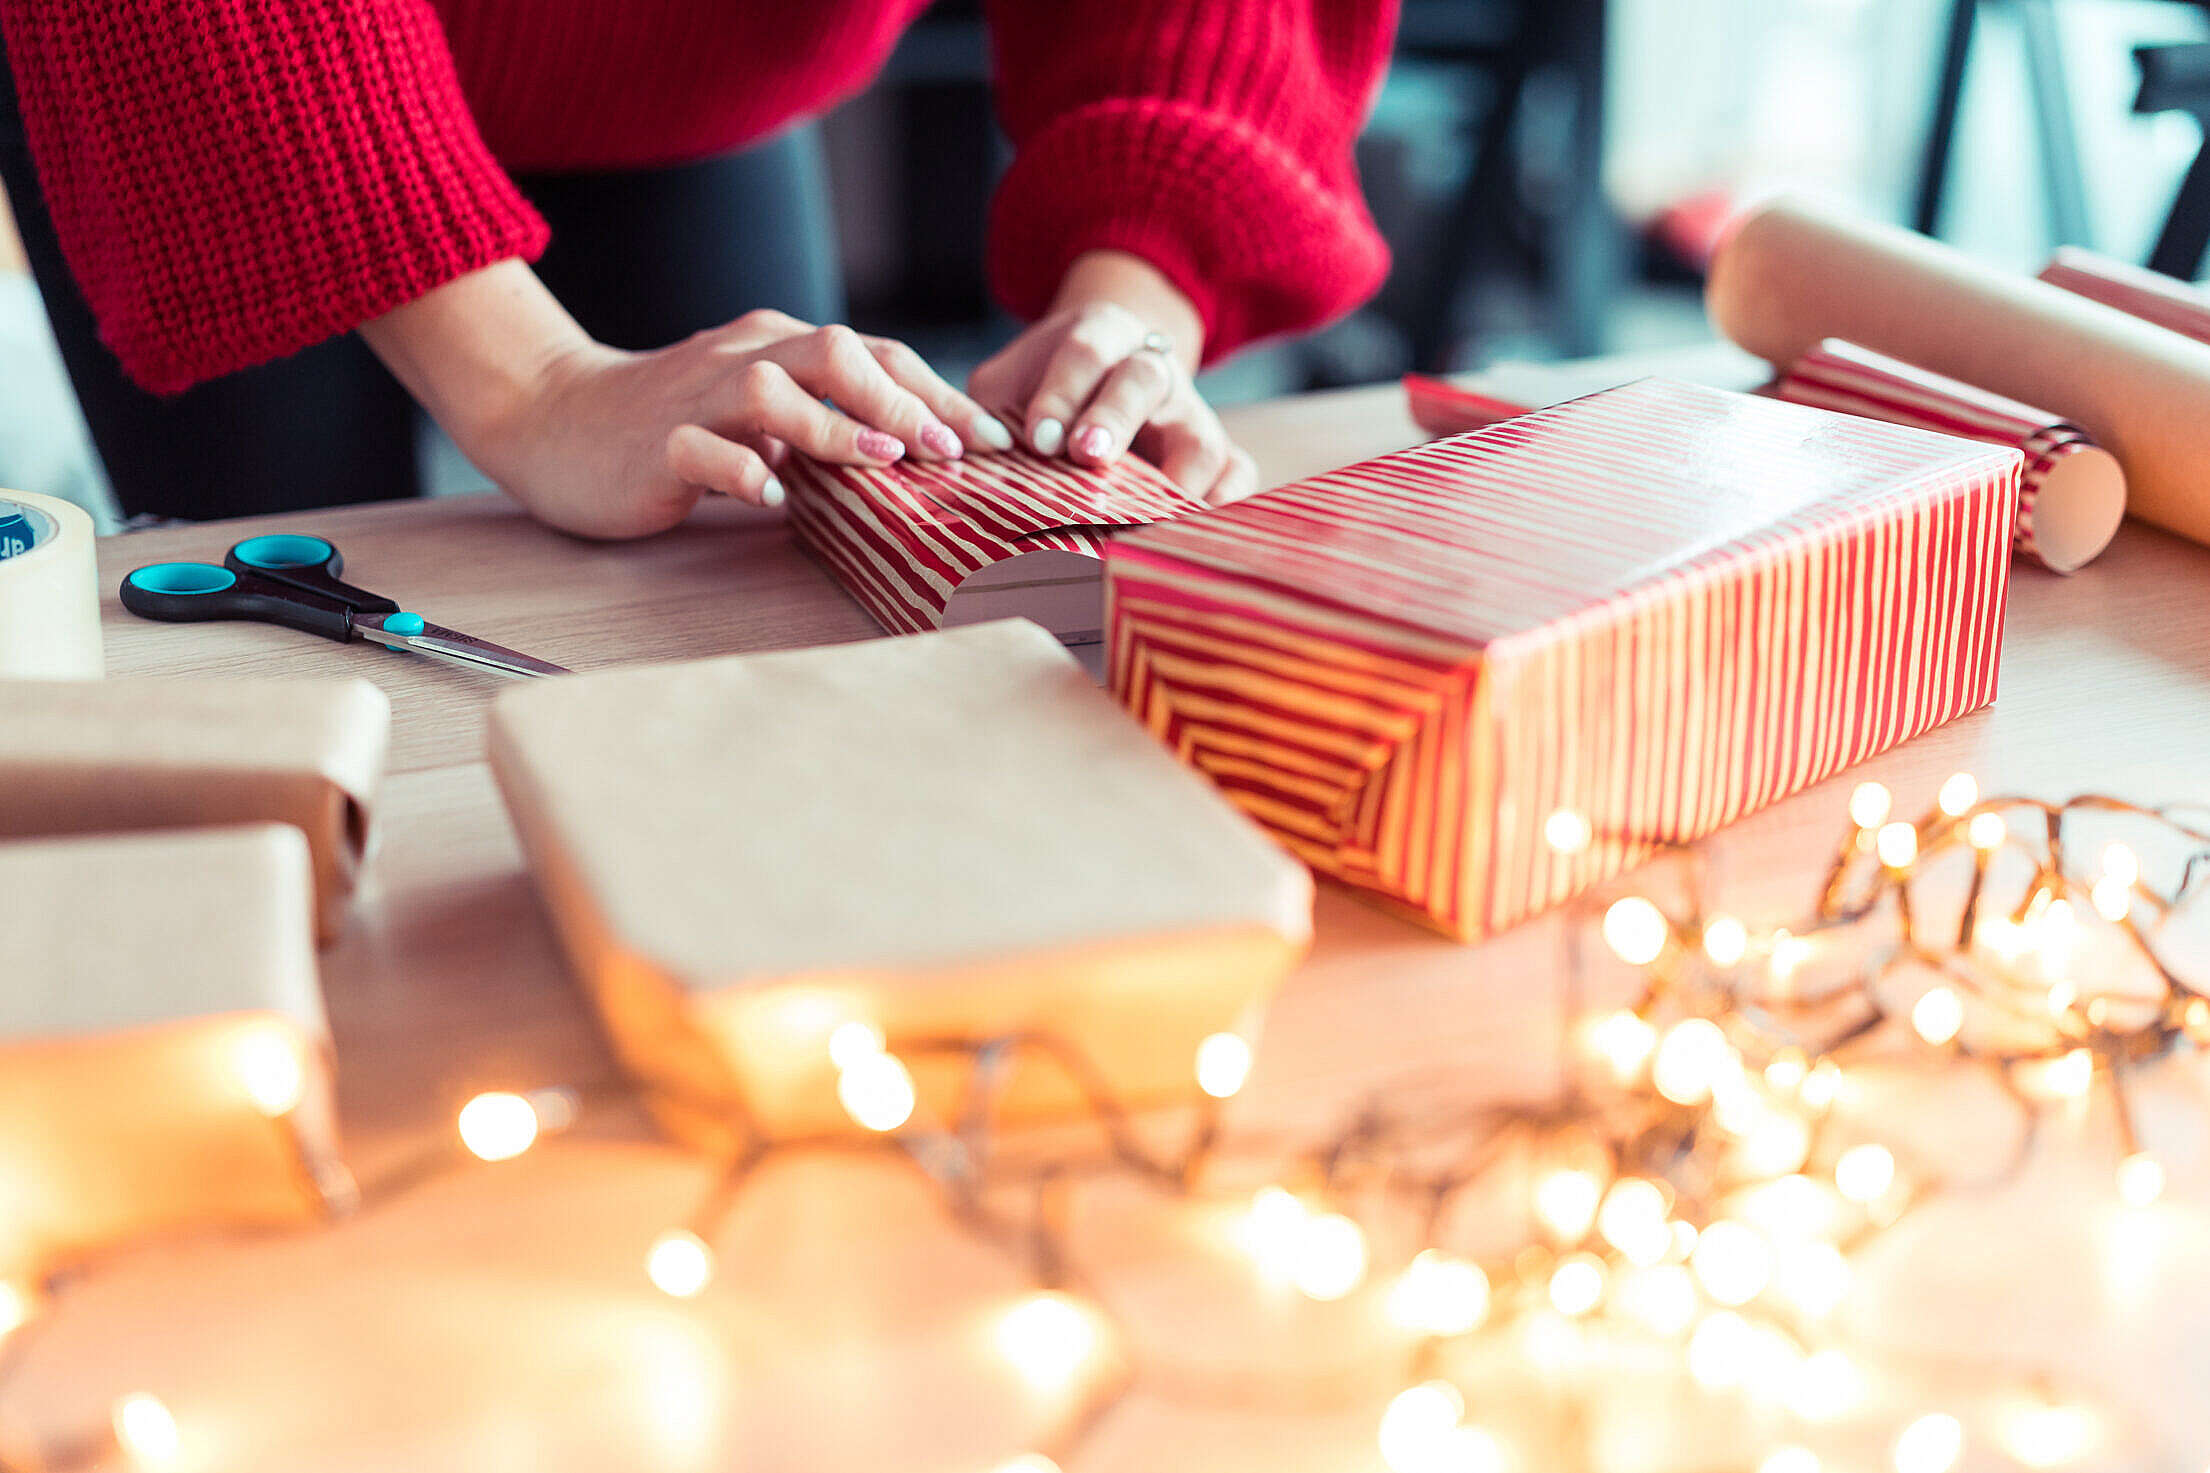 Woman Wrapping Christmas Gifts Free Stock Photo